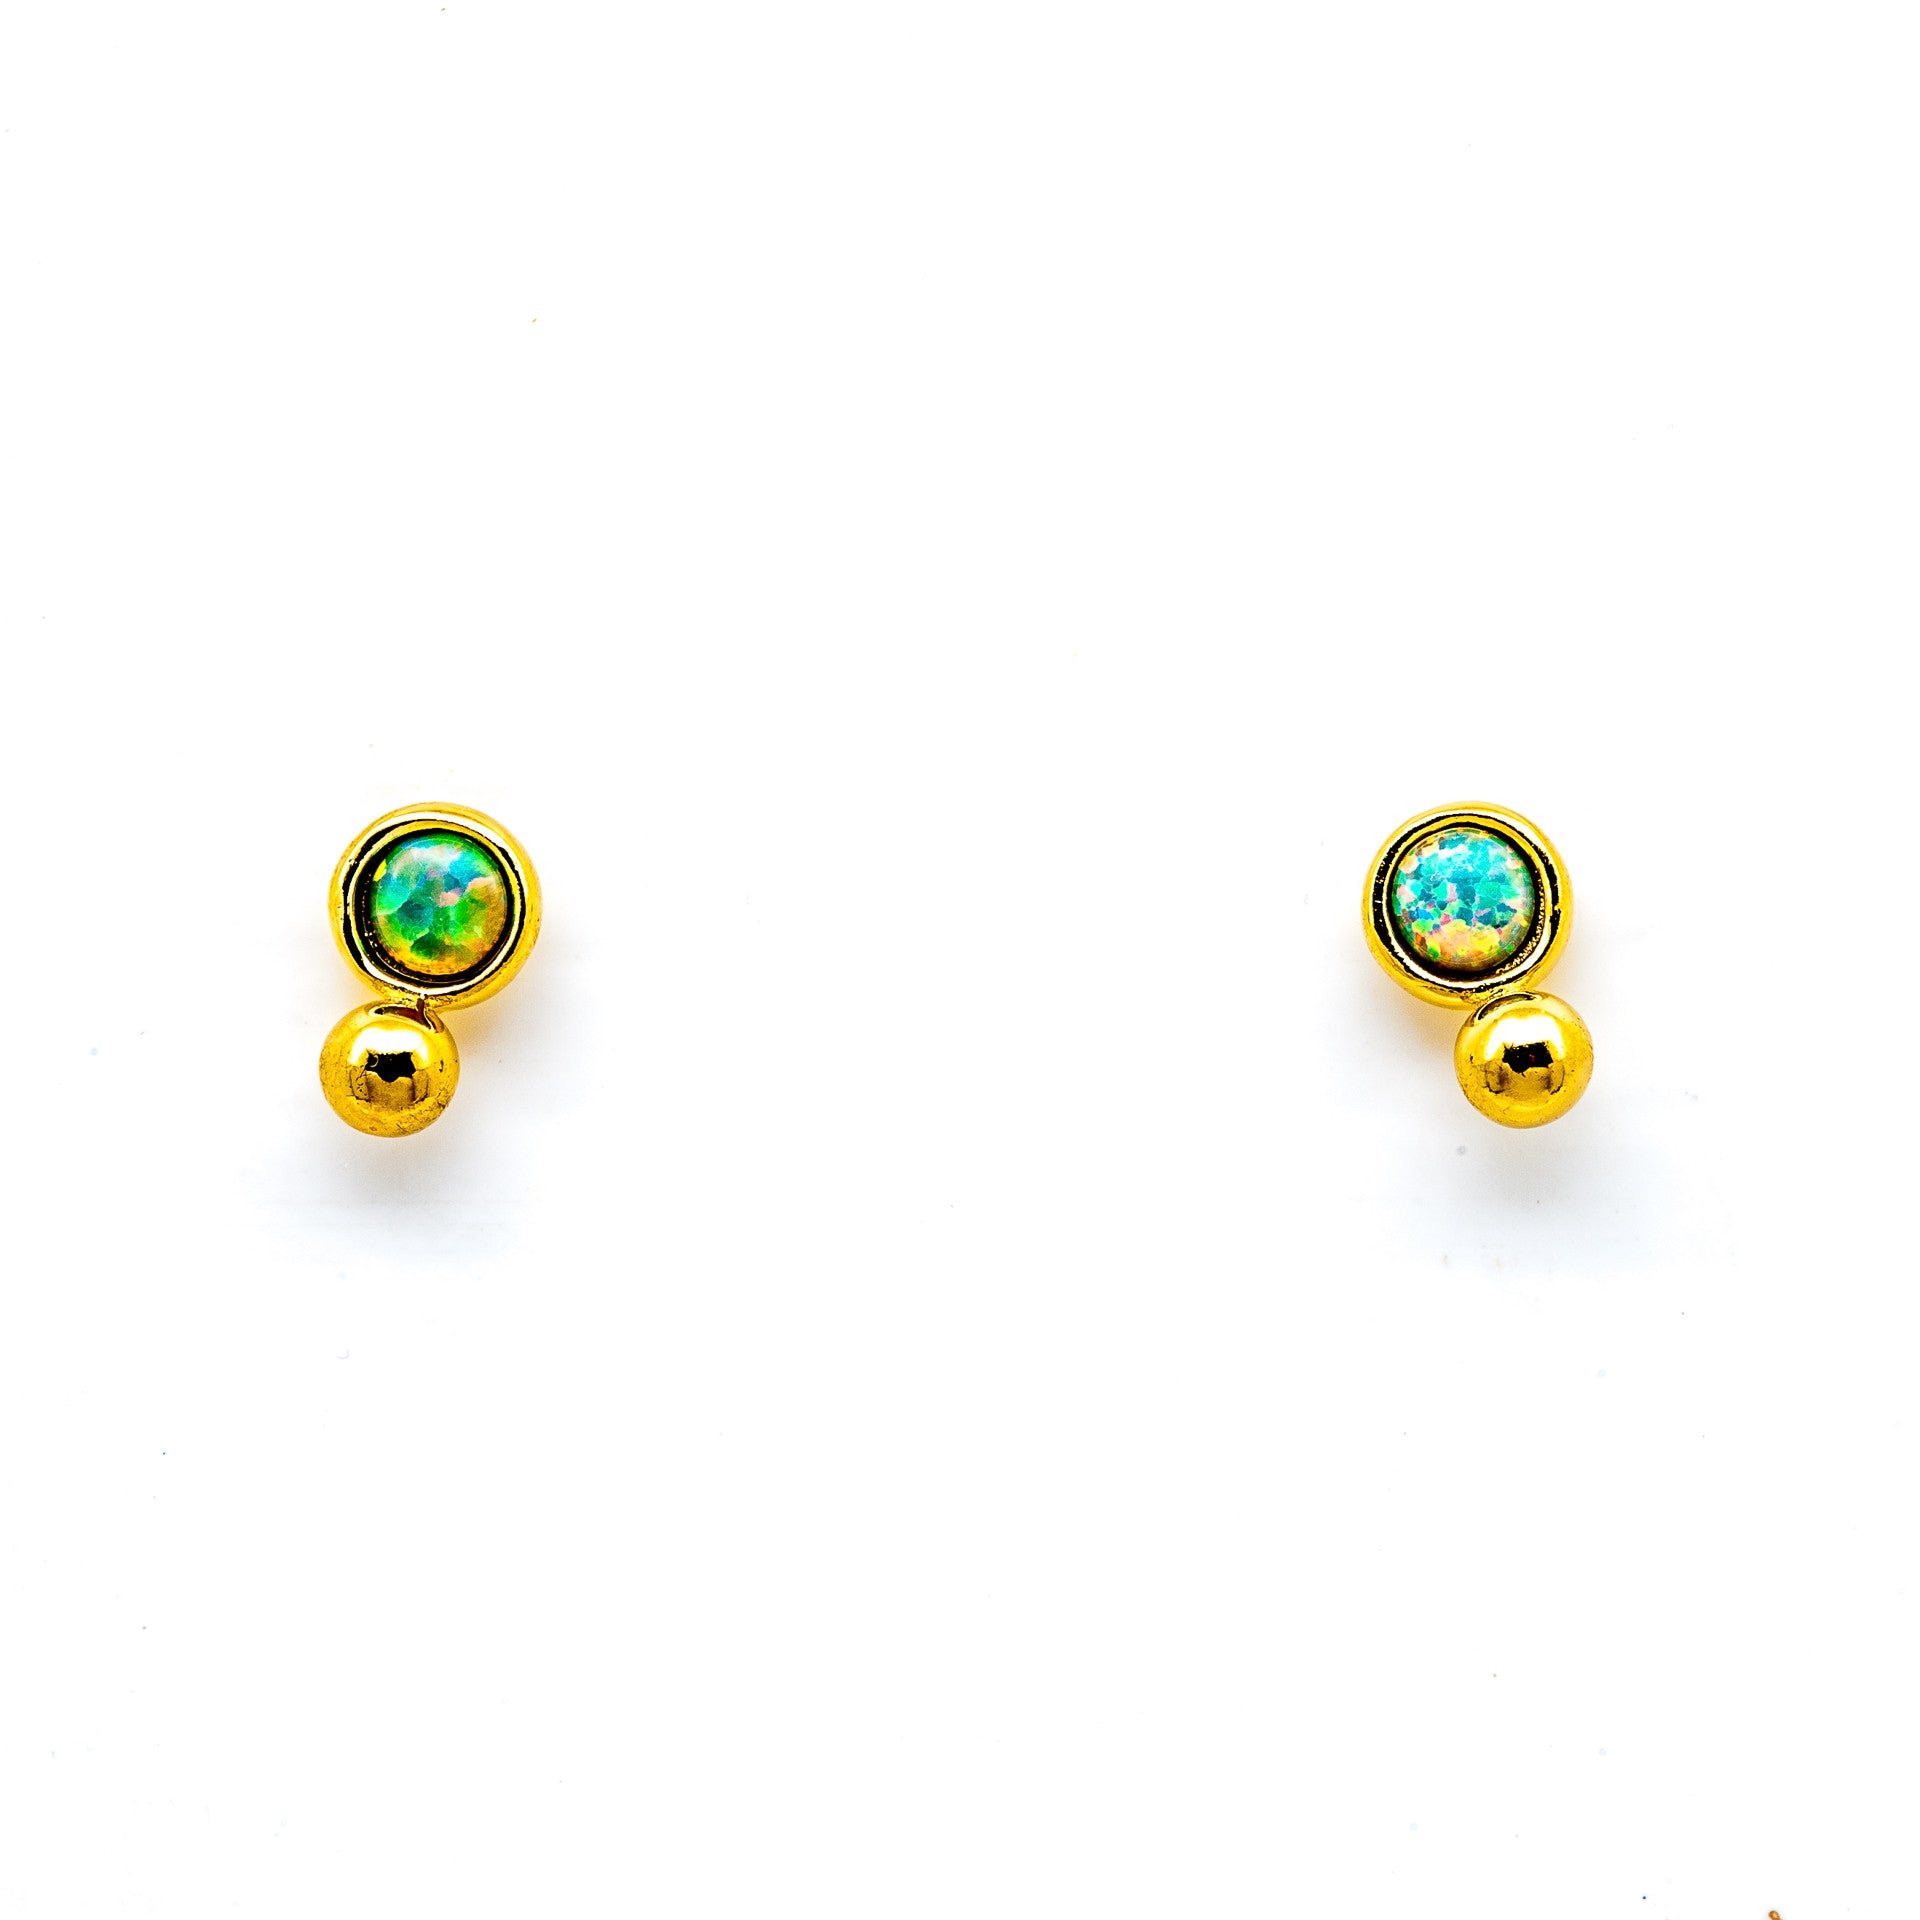 GOLD VERMEIL OPAL WITH GOLD BALL STUD